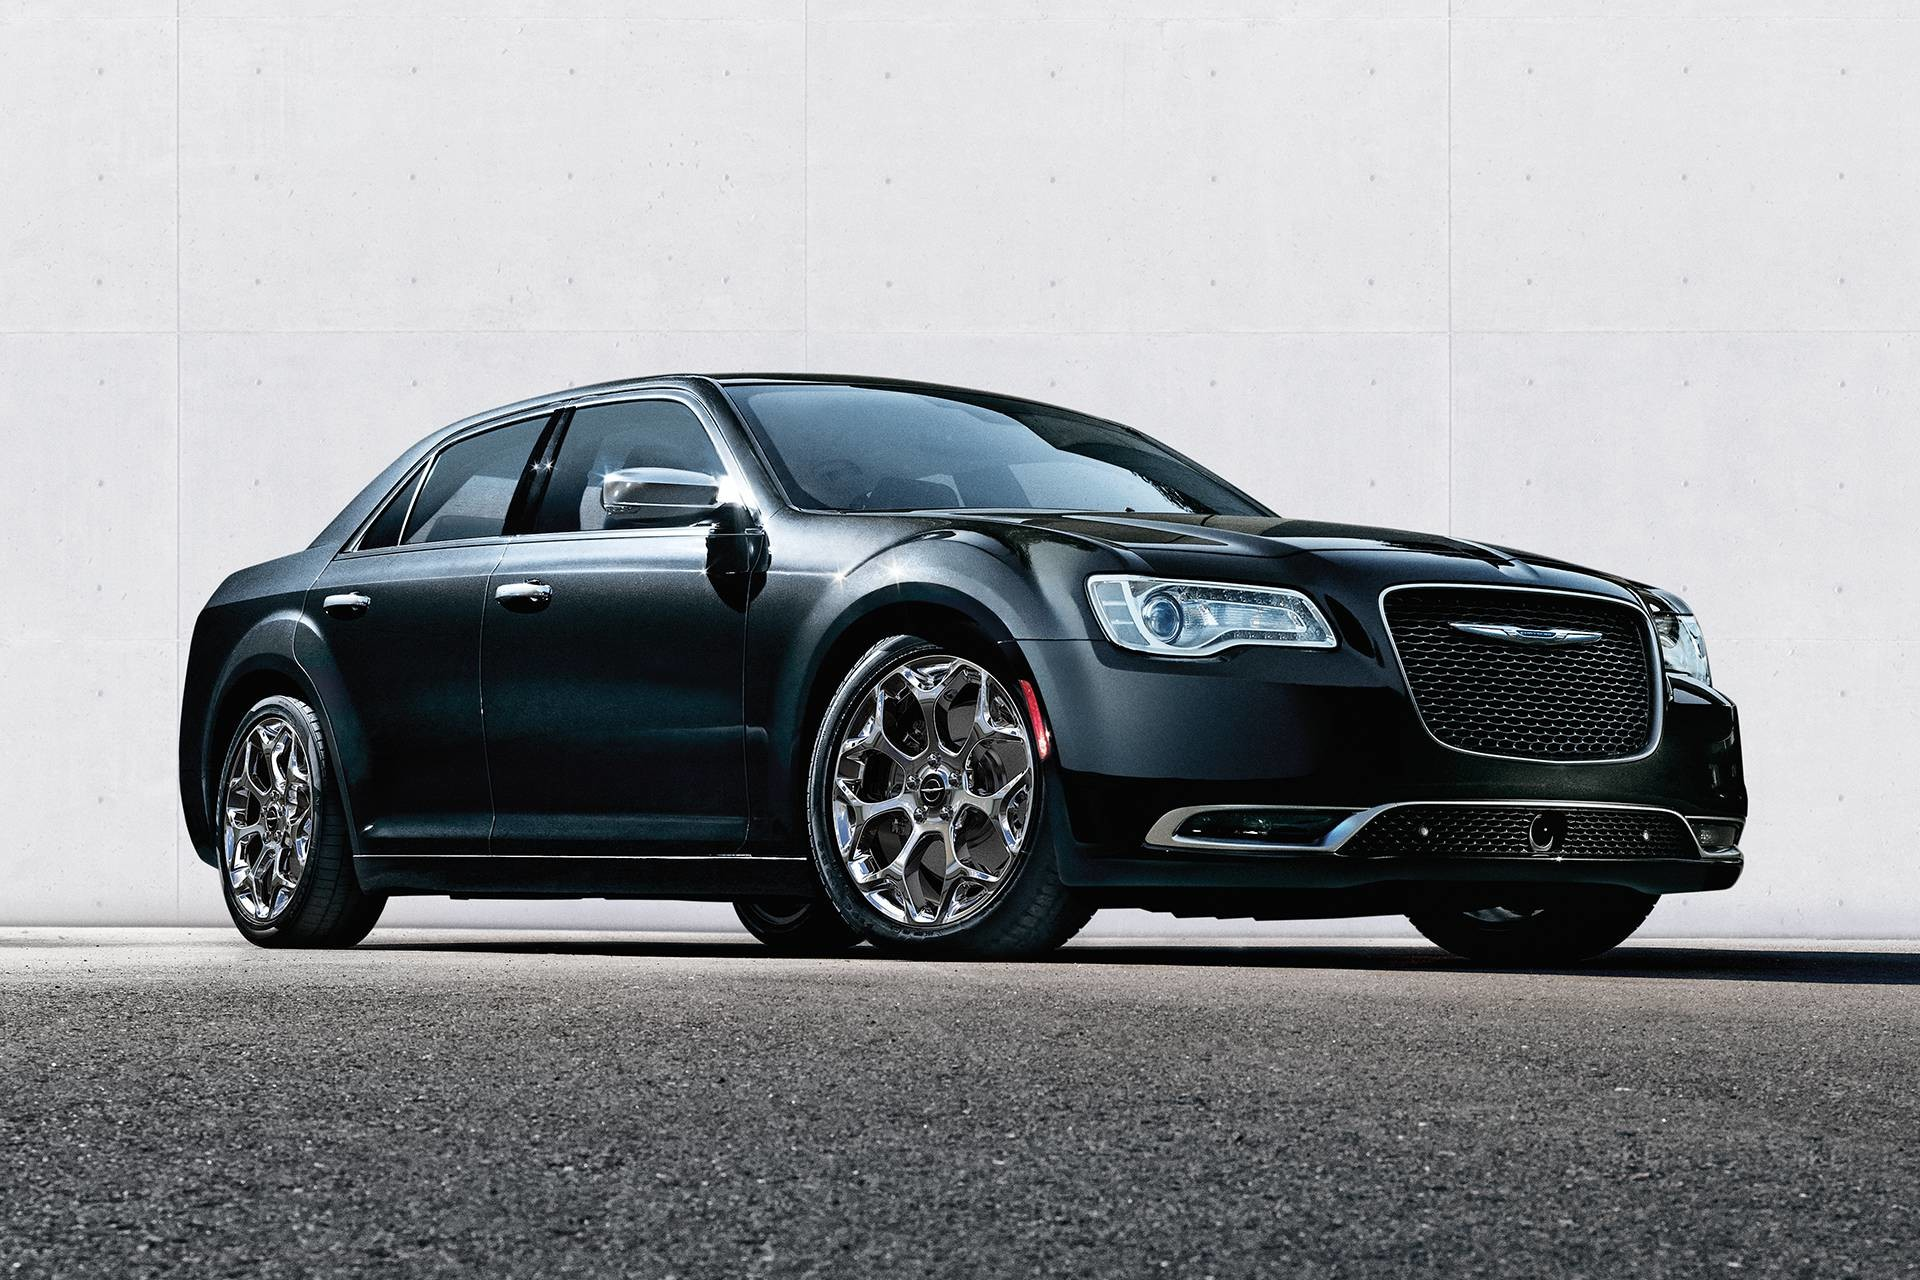 2019 Chrysler 300 with chrome accents